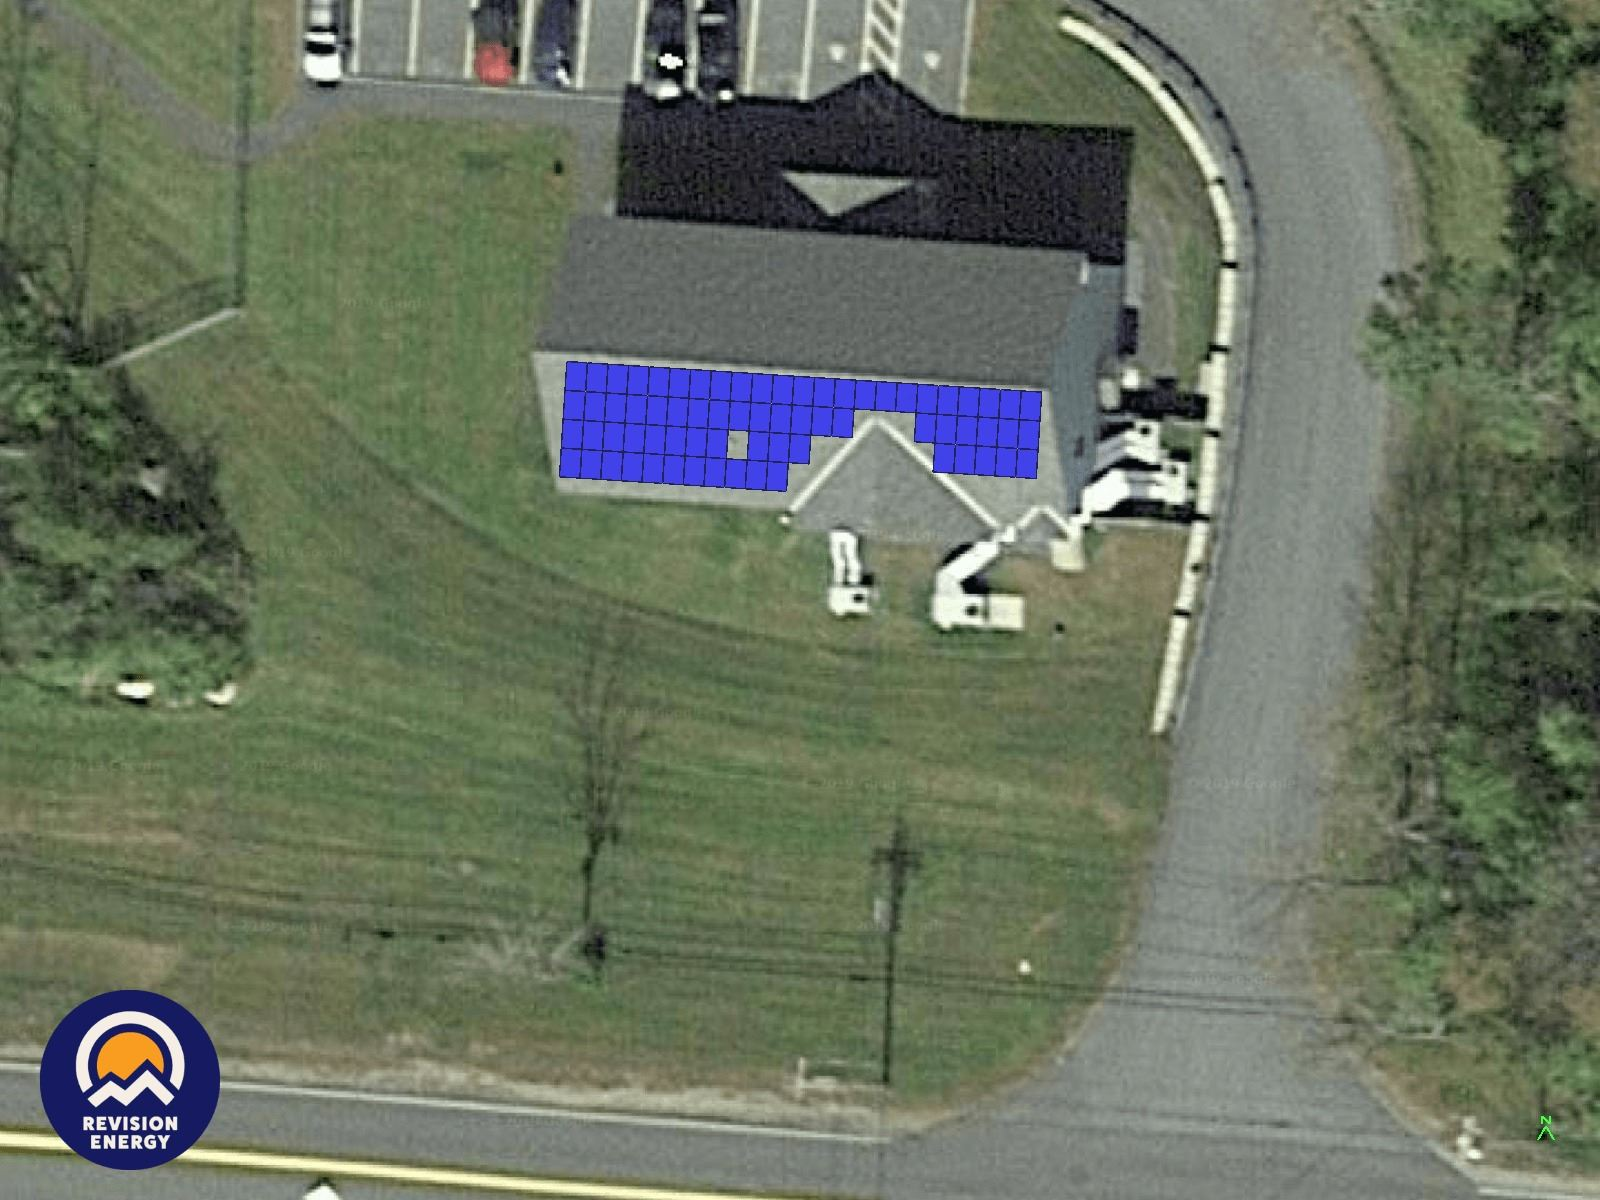 Lebanon Public Works Administration Building roof with solar array depiction